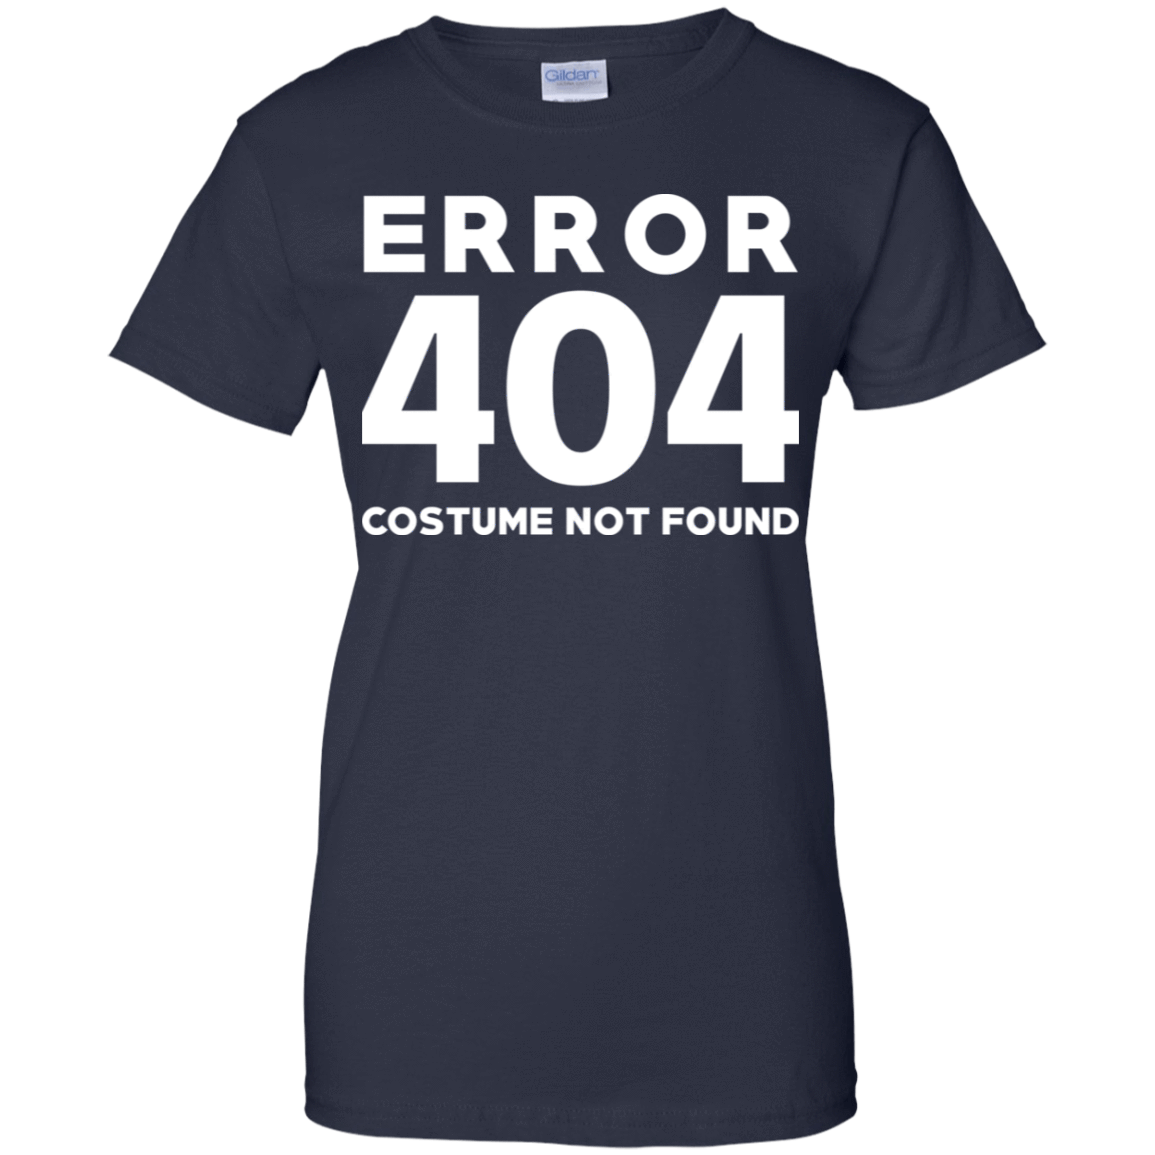 Error 404 Costume Not Found 939-9259-73513404-44765 - Tee Ript